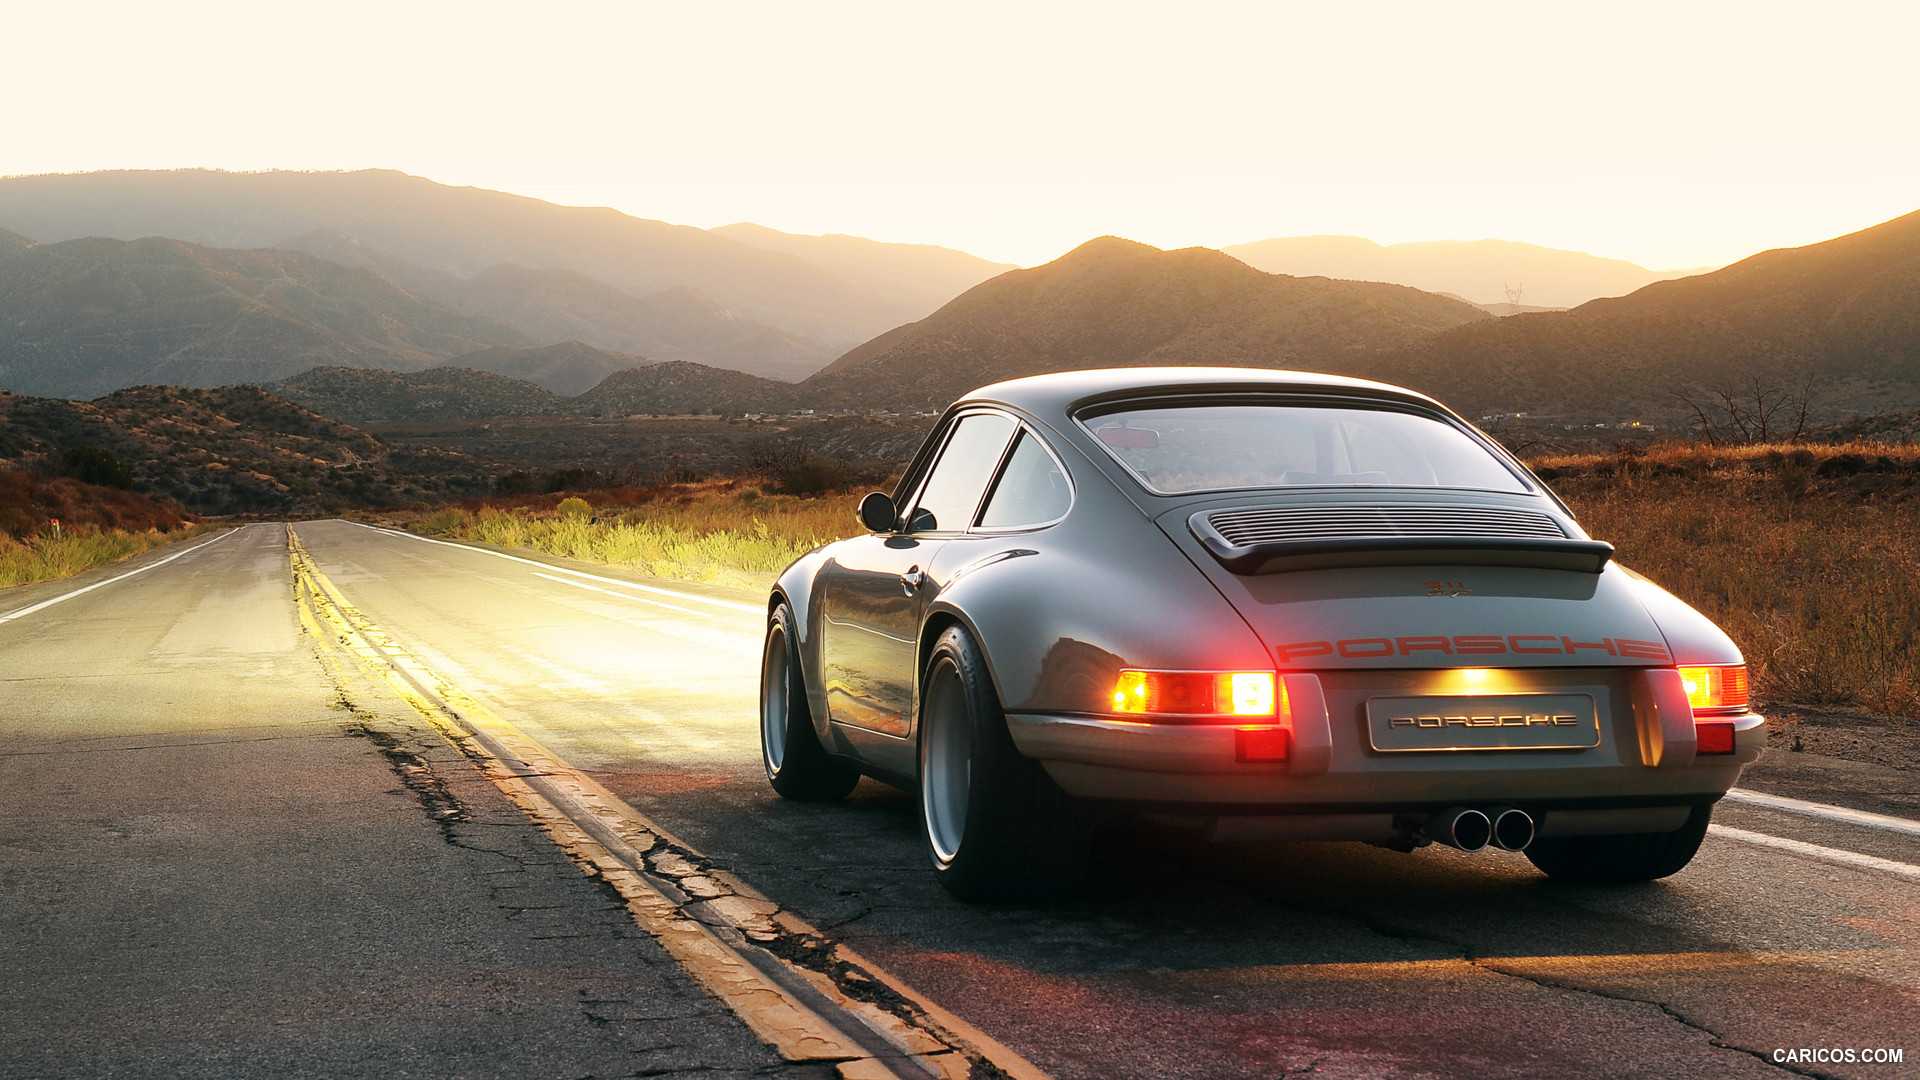 Porsche Hd Wallpapers 1080p: Singer Porsche Wallpaper